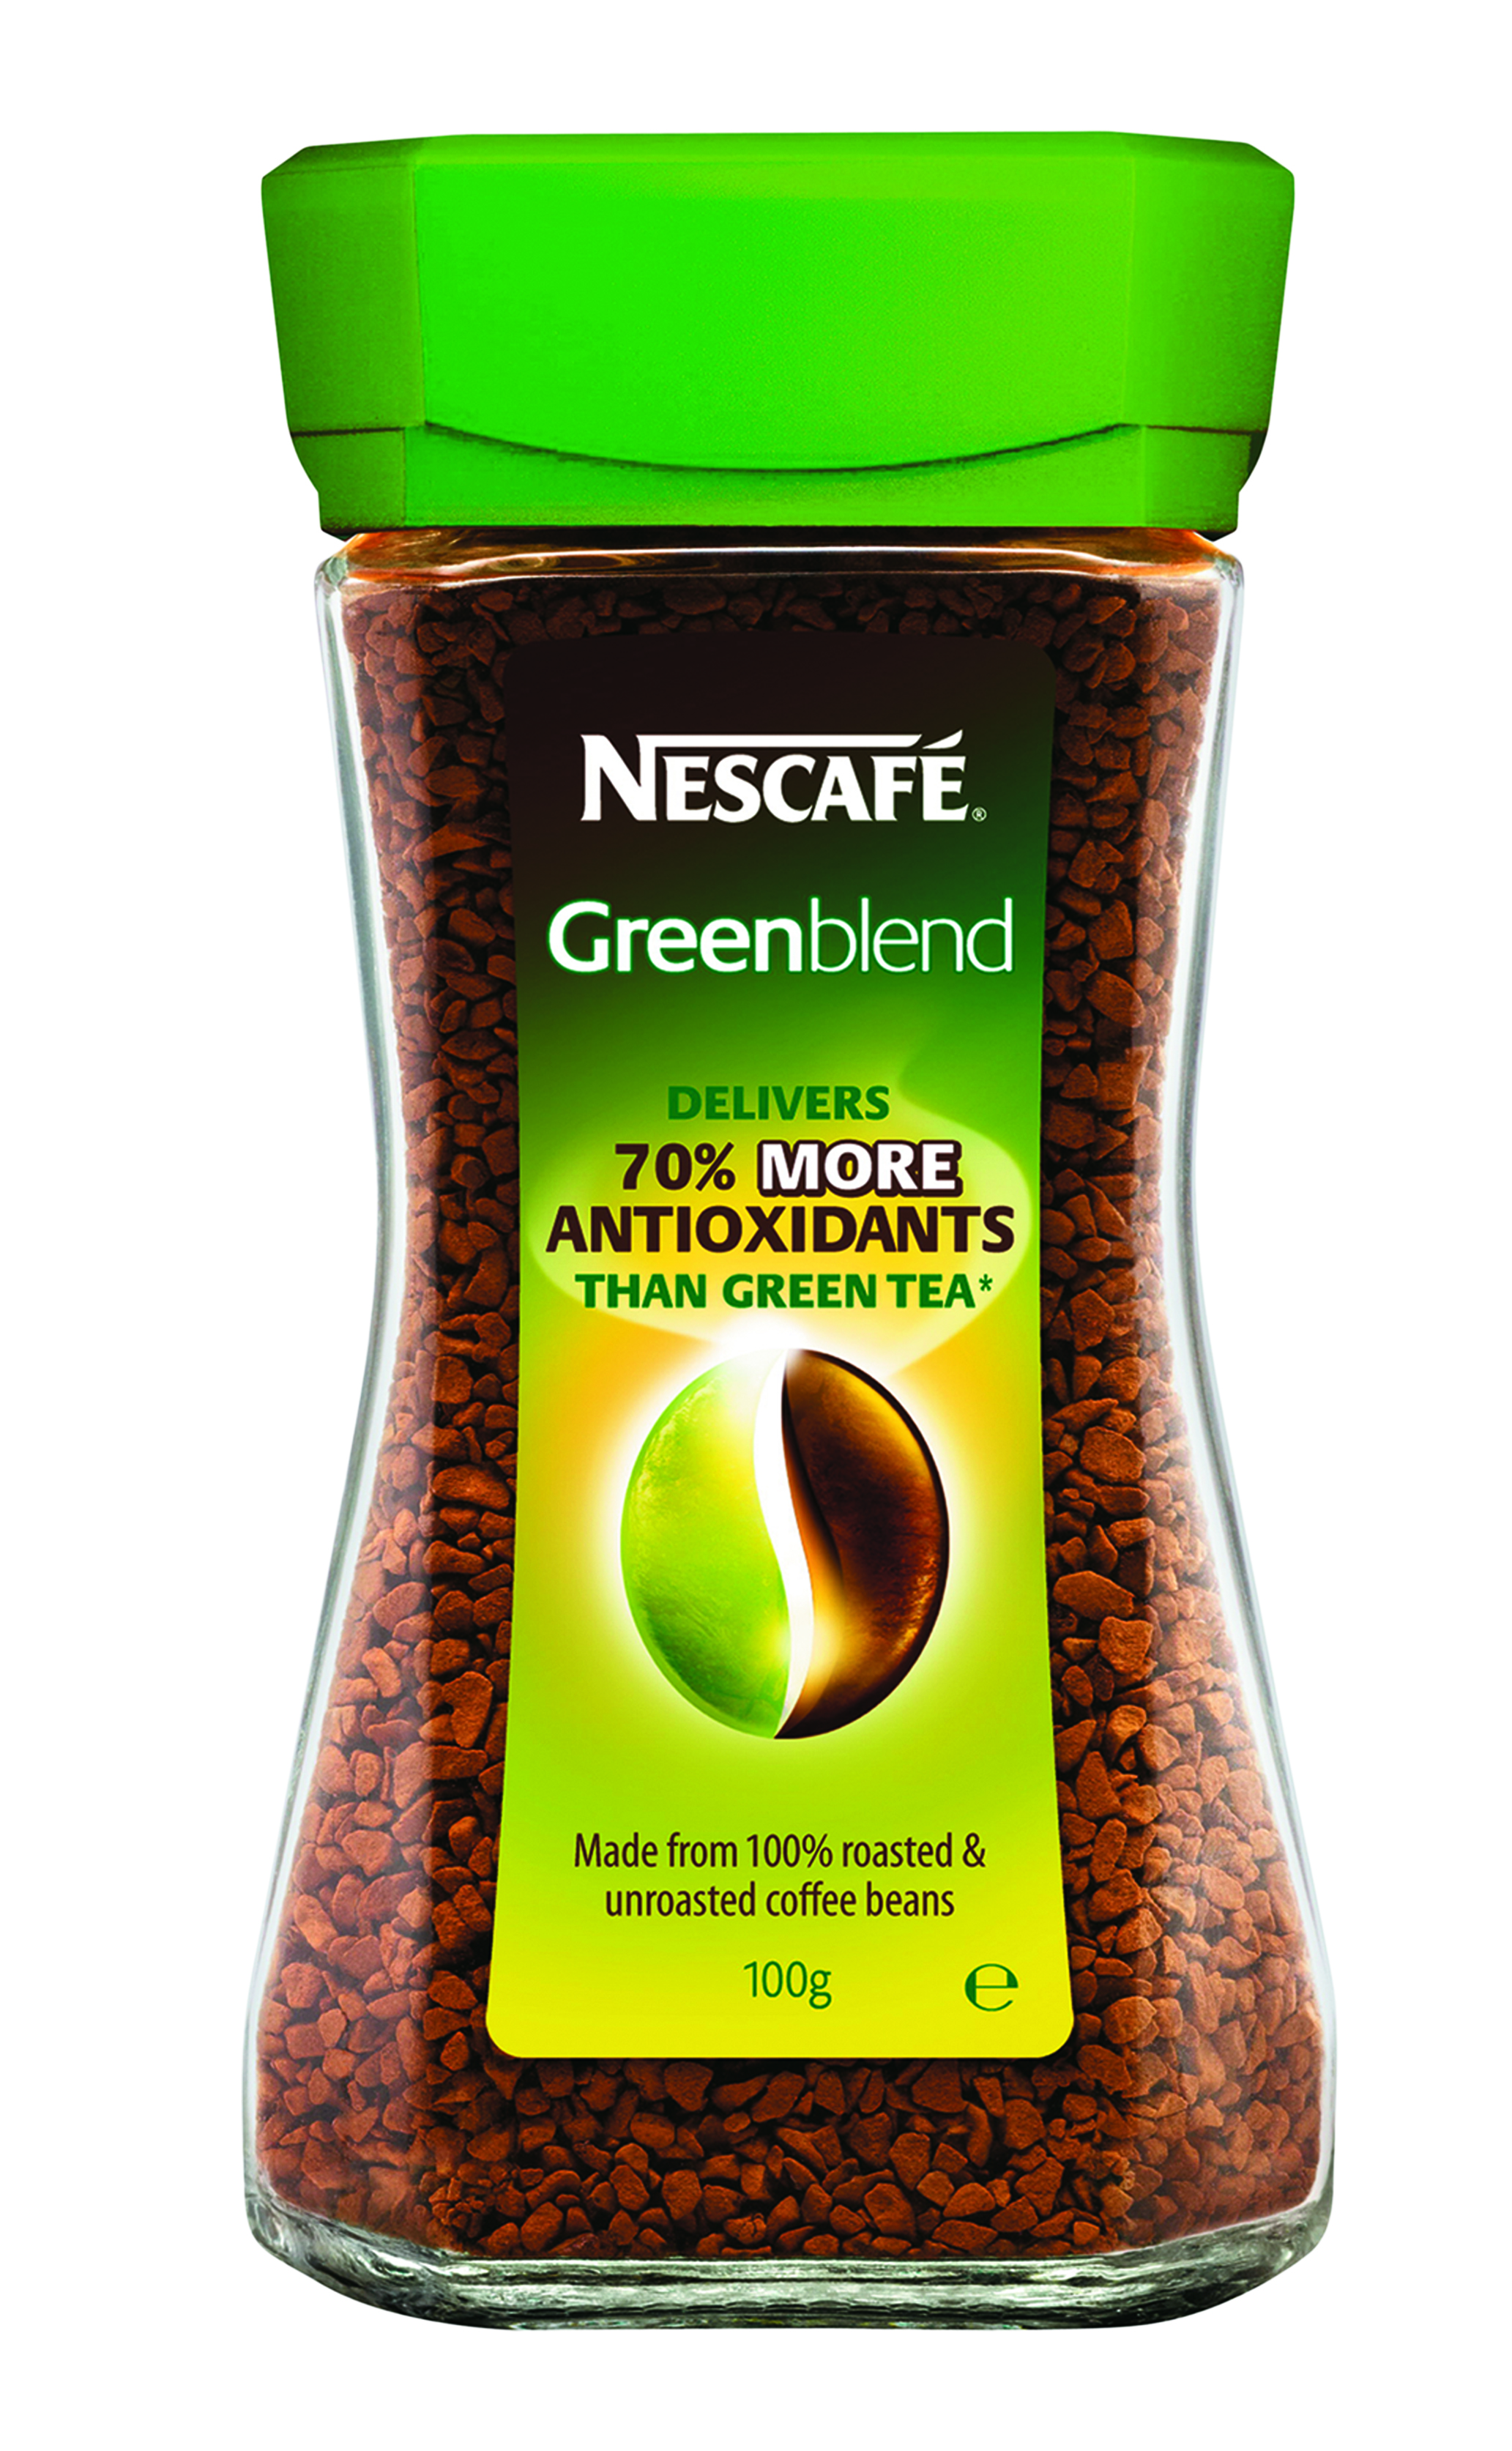 Nestl 233 new zealand has just launched their new nescafe greenblend an